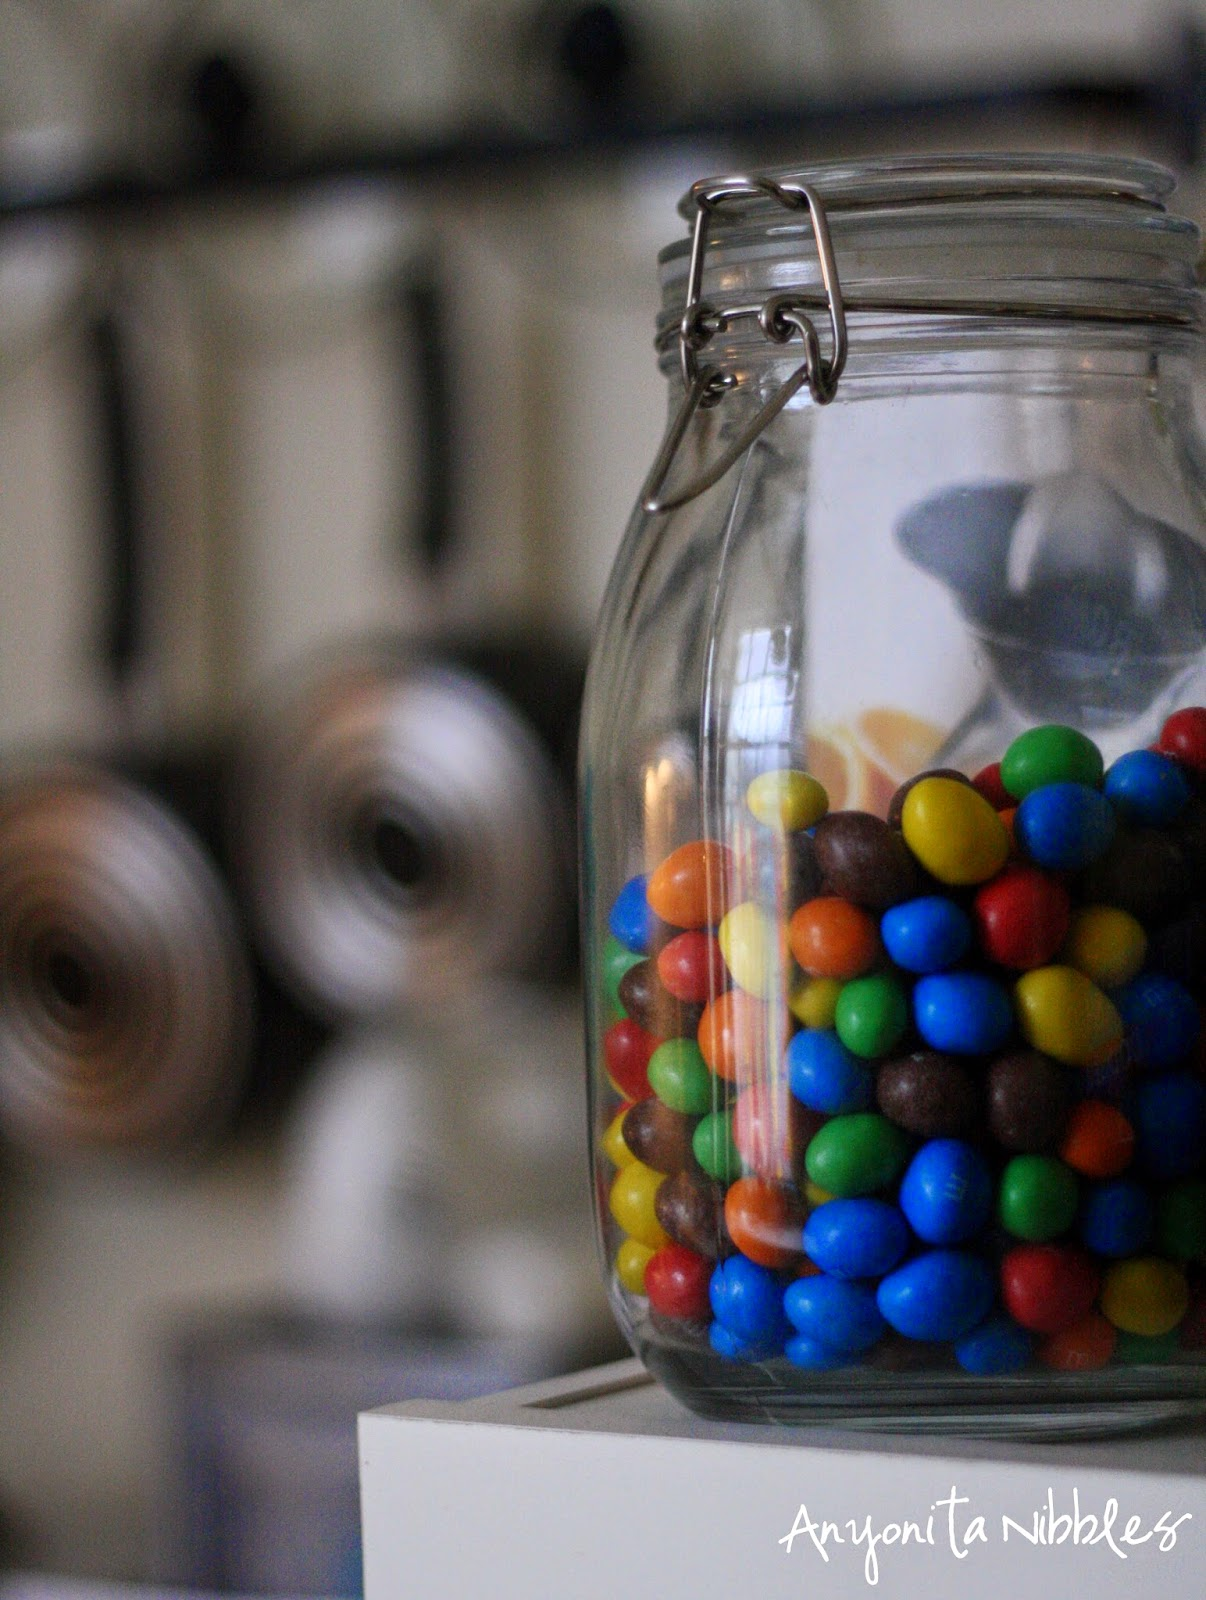 A jar of M&Ms from Anyonita Nibbles's kitchen tour